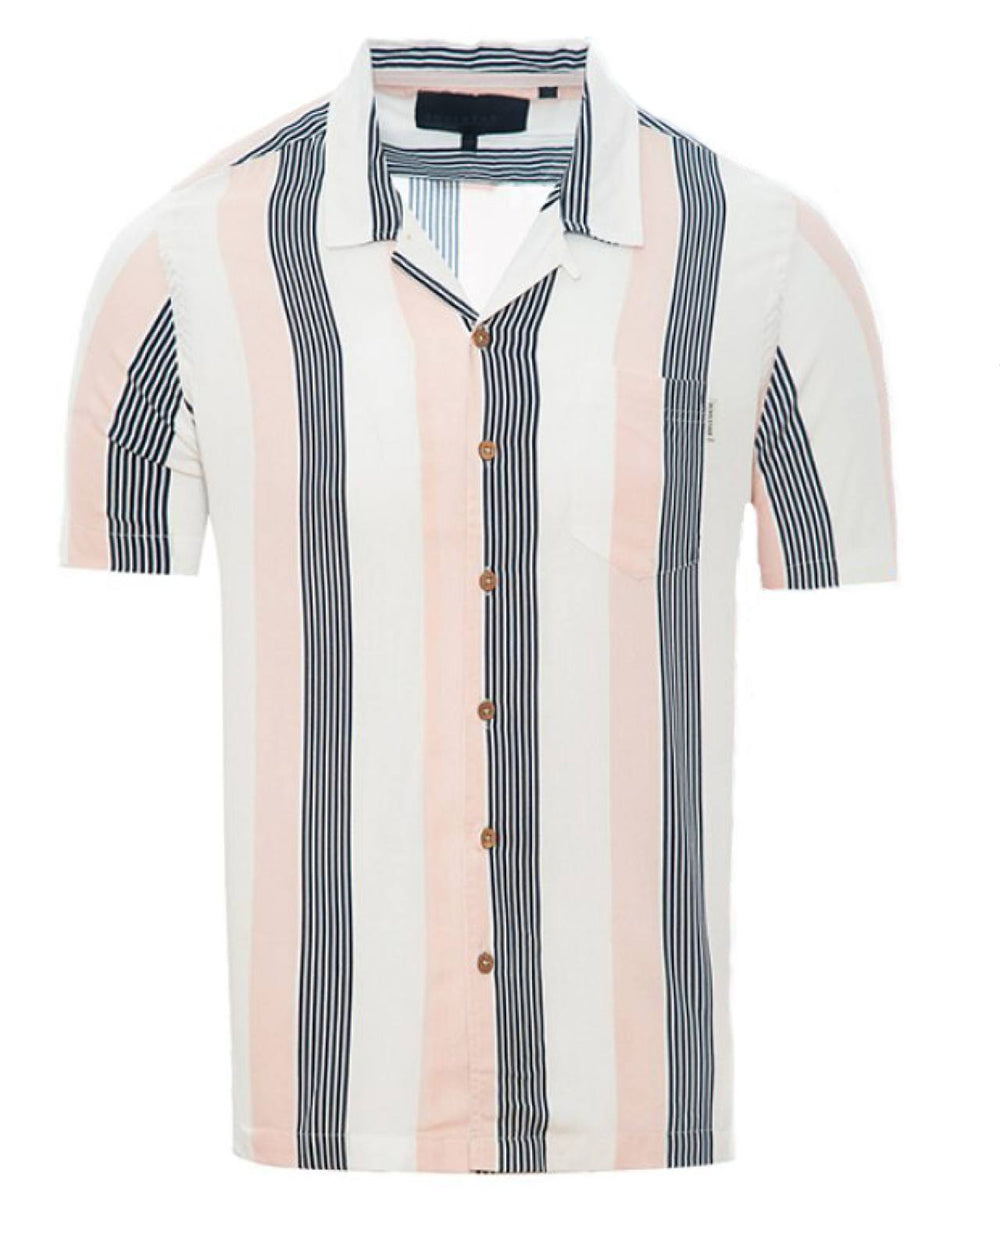 Soft Feel Vertical Stripe Shirt Pink